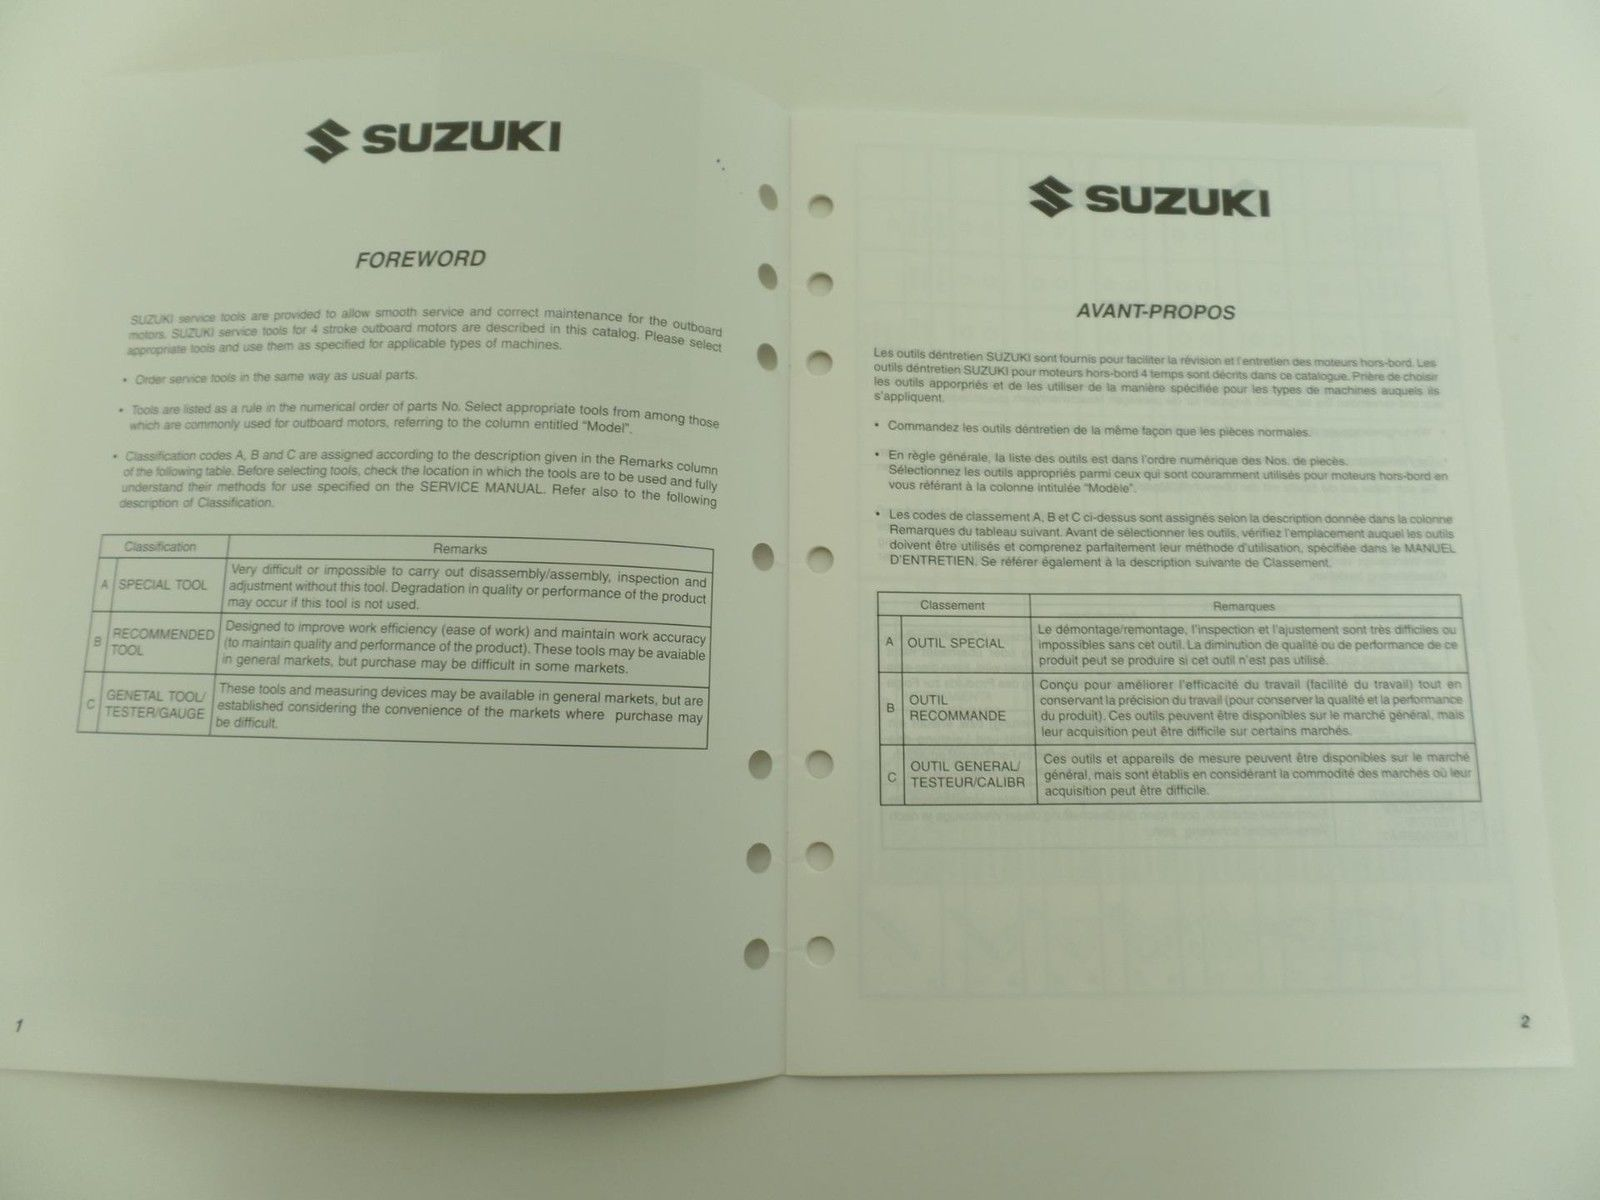 Suzuki 2004 Special Service Tools Catalog and 50 similar items